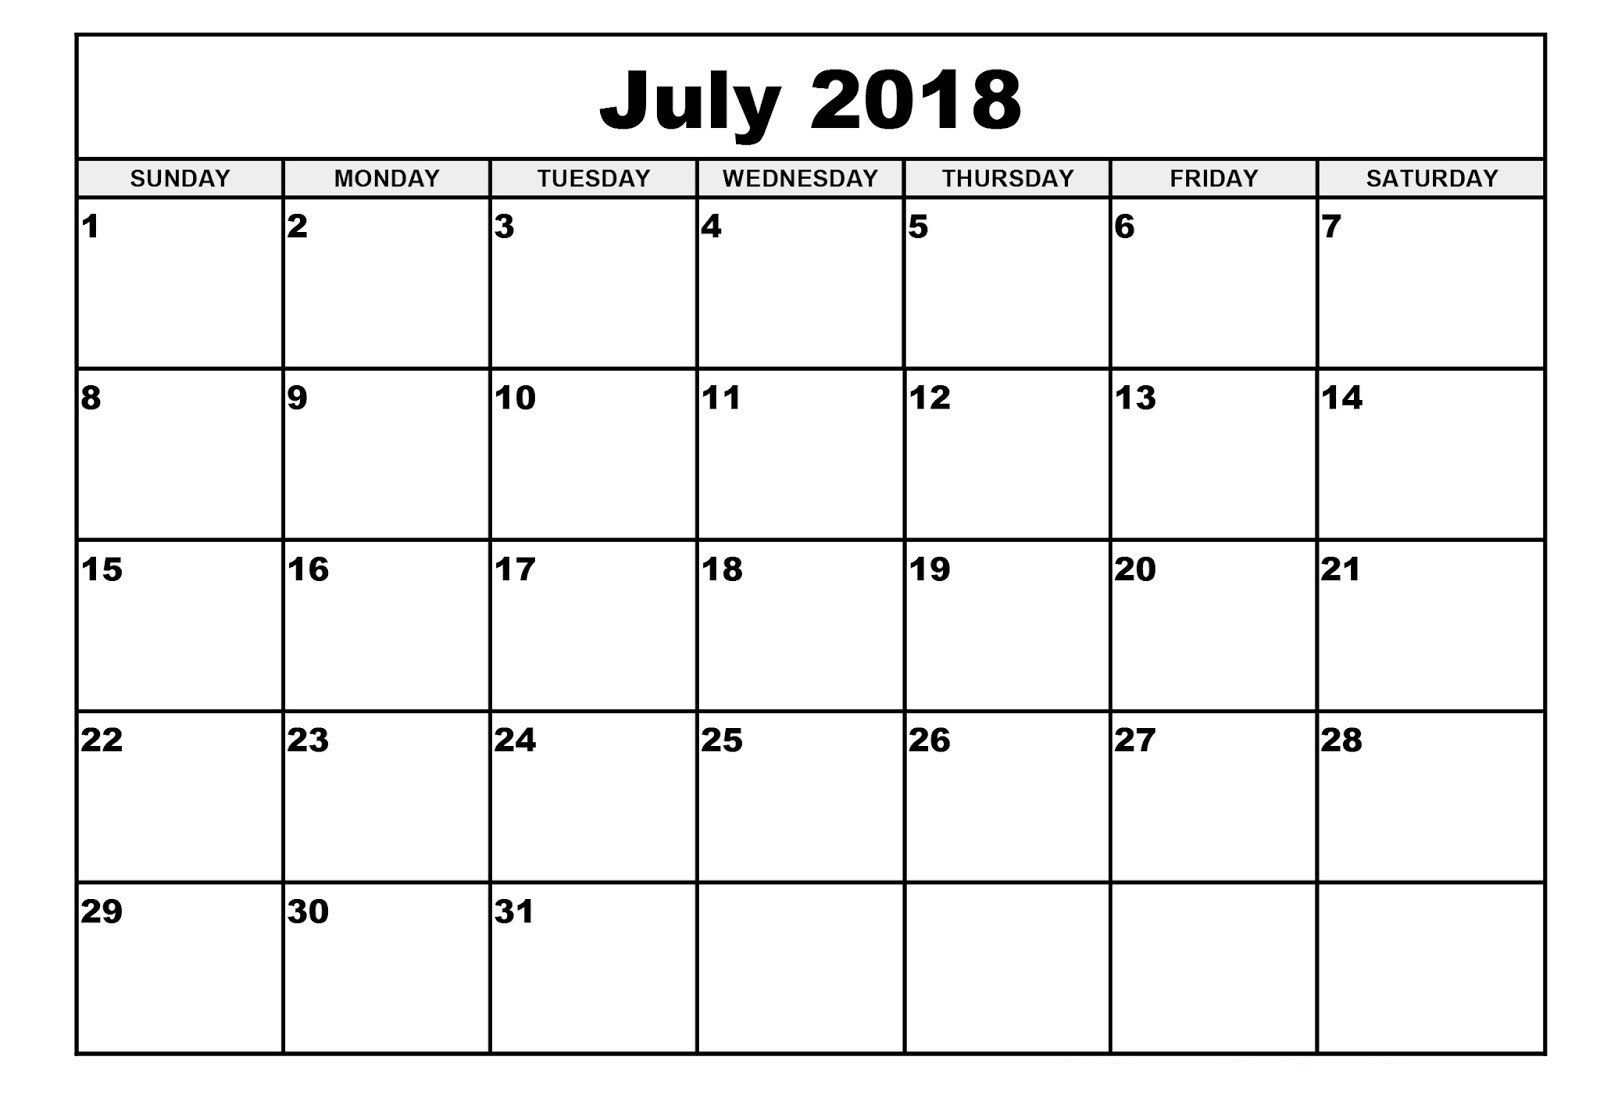 July Calendar 2018 Printable Design Planner